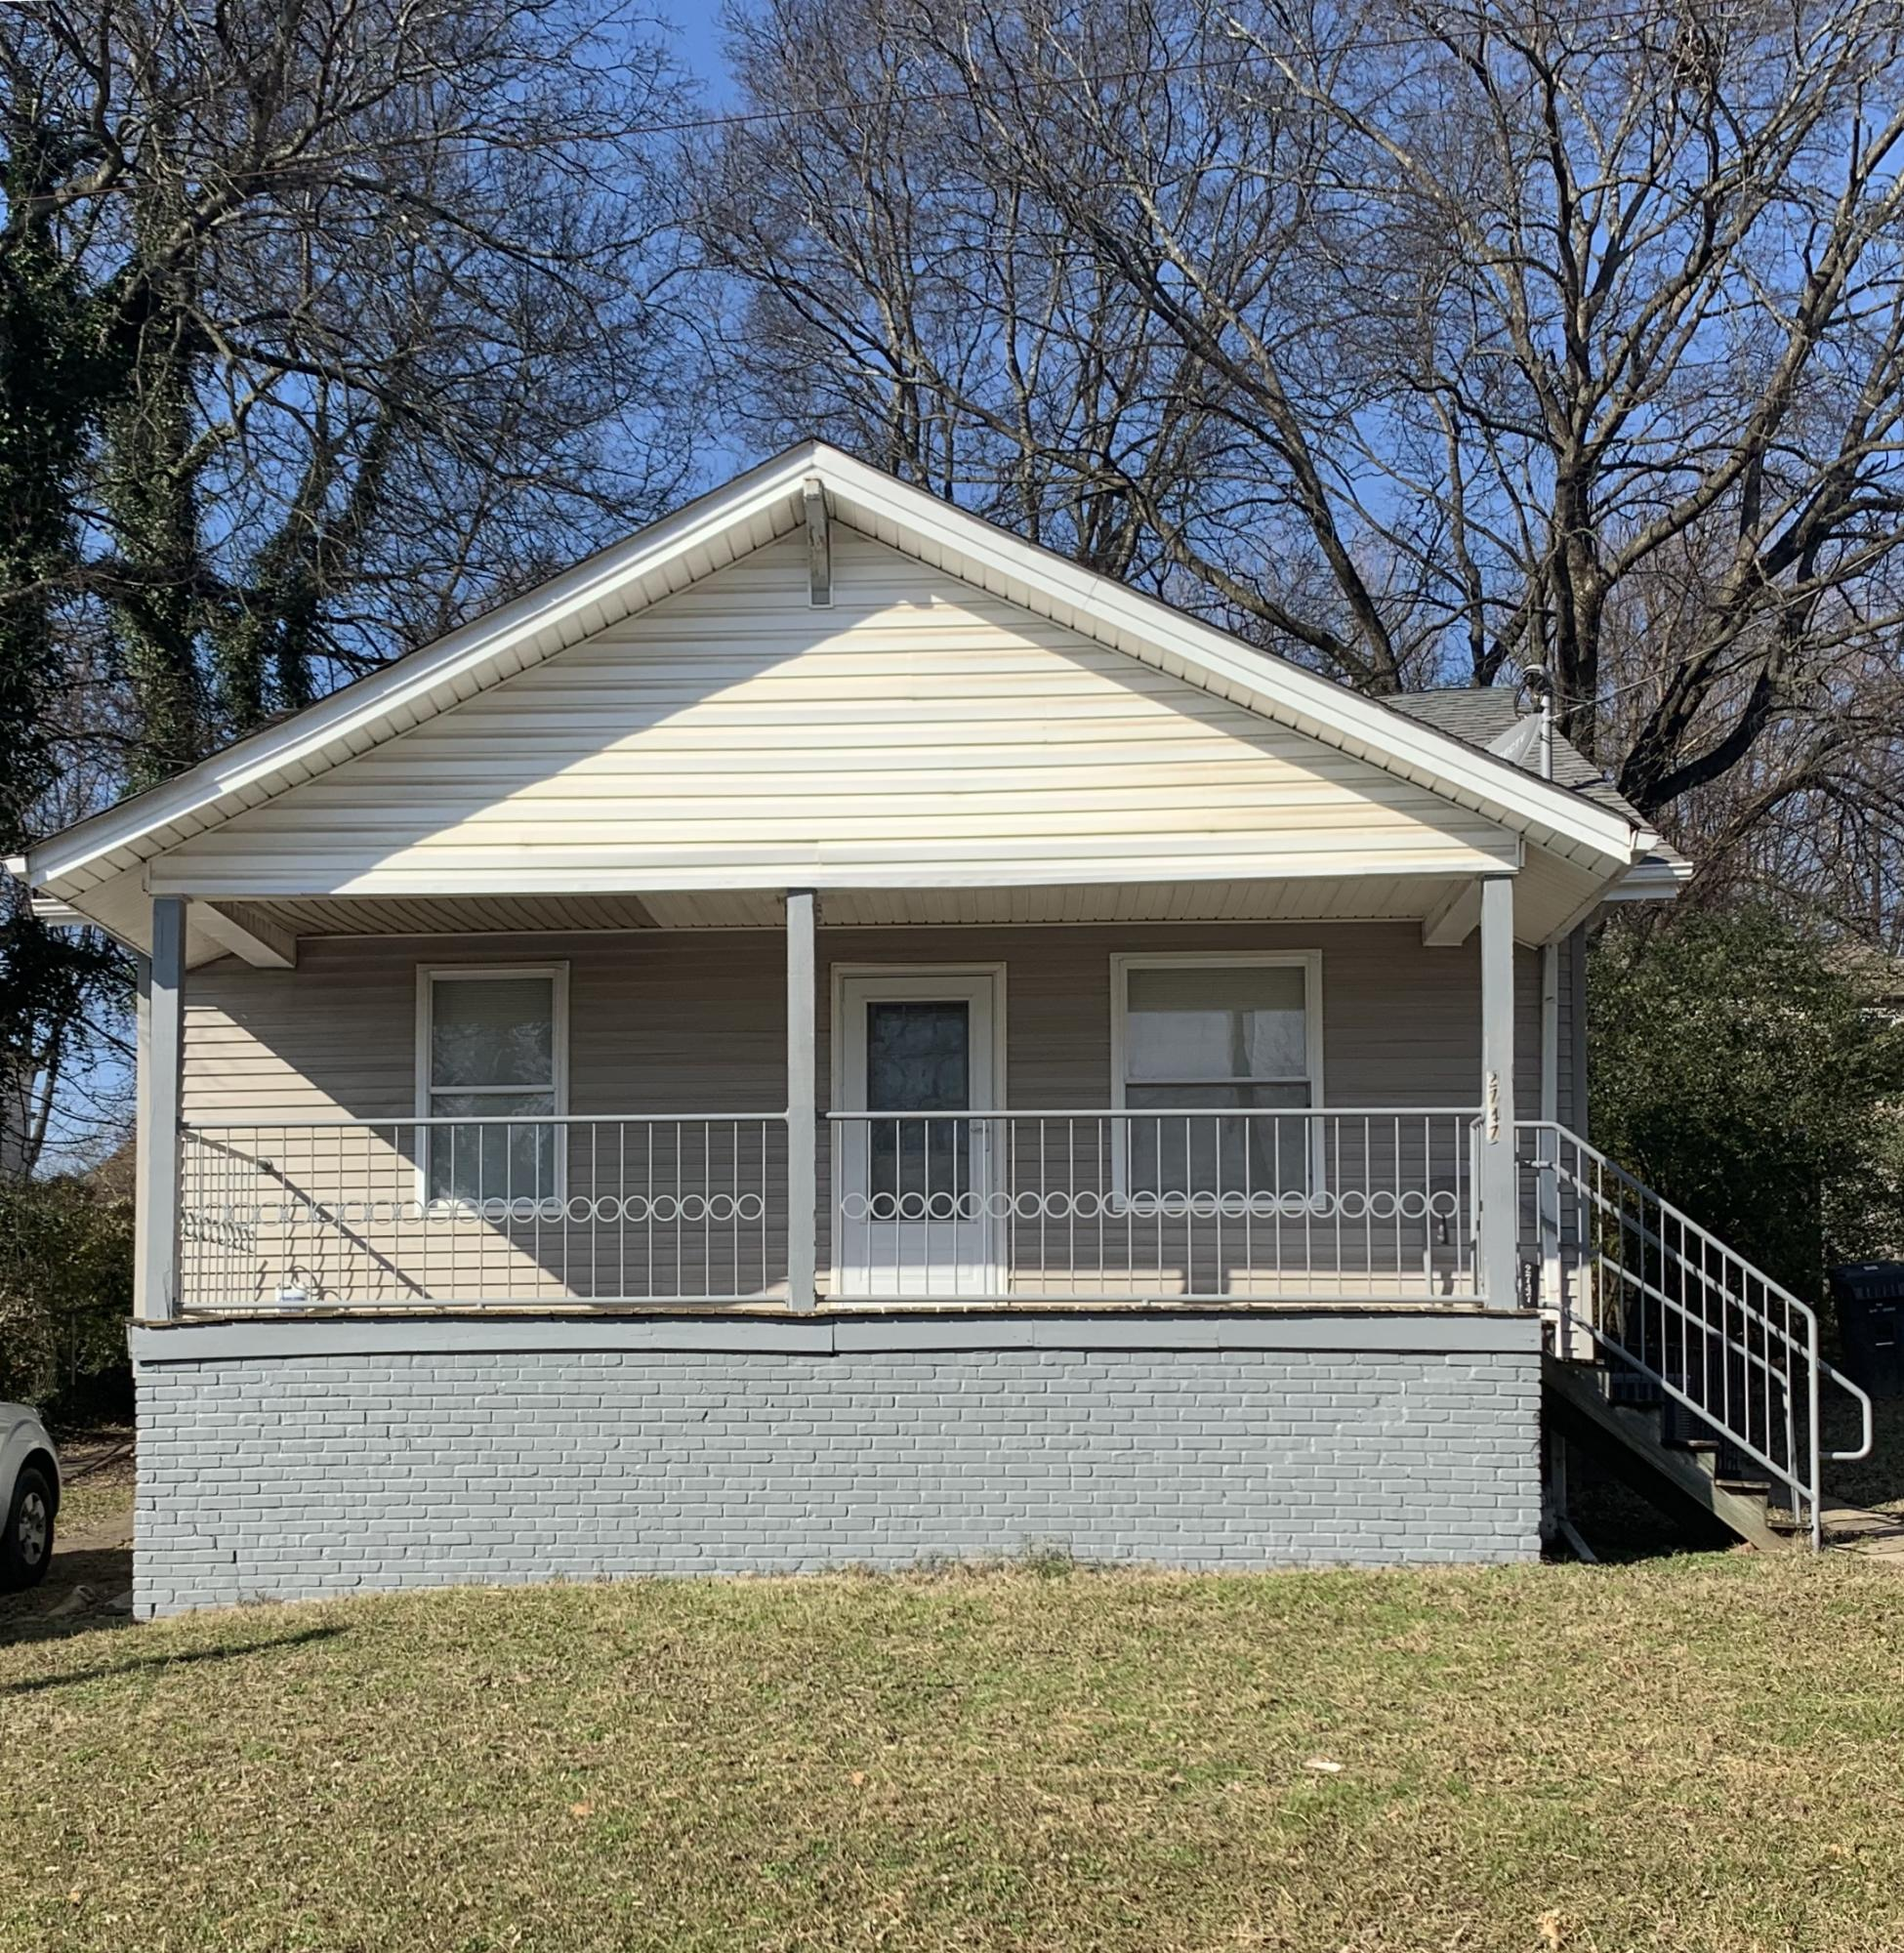 2747 Nichols Ave, Knoxville, Tennessee 37917, 3 Bedrooms Bedrooms, ,2 BathroomsBathrooms,Single Family,For Sale,Nichols,1102604